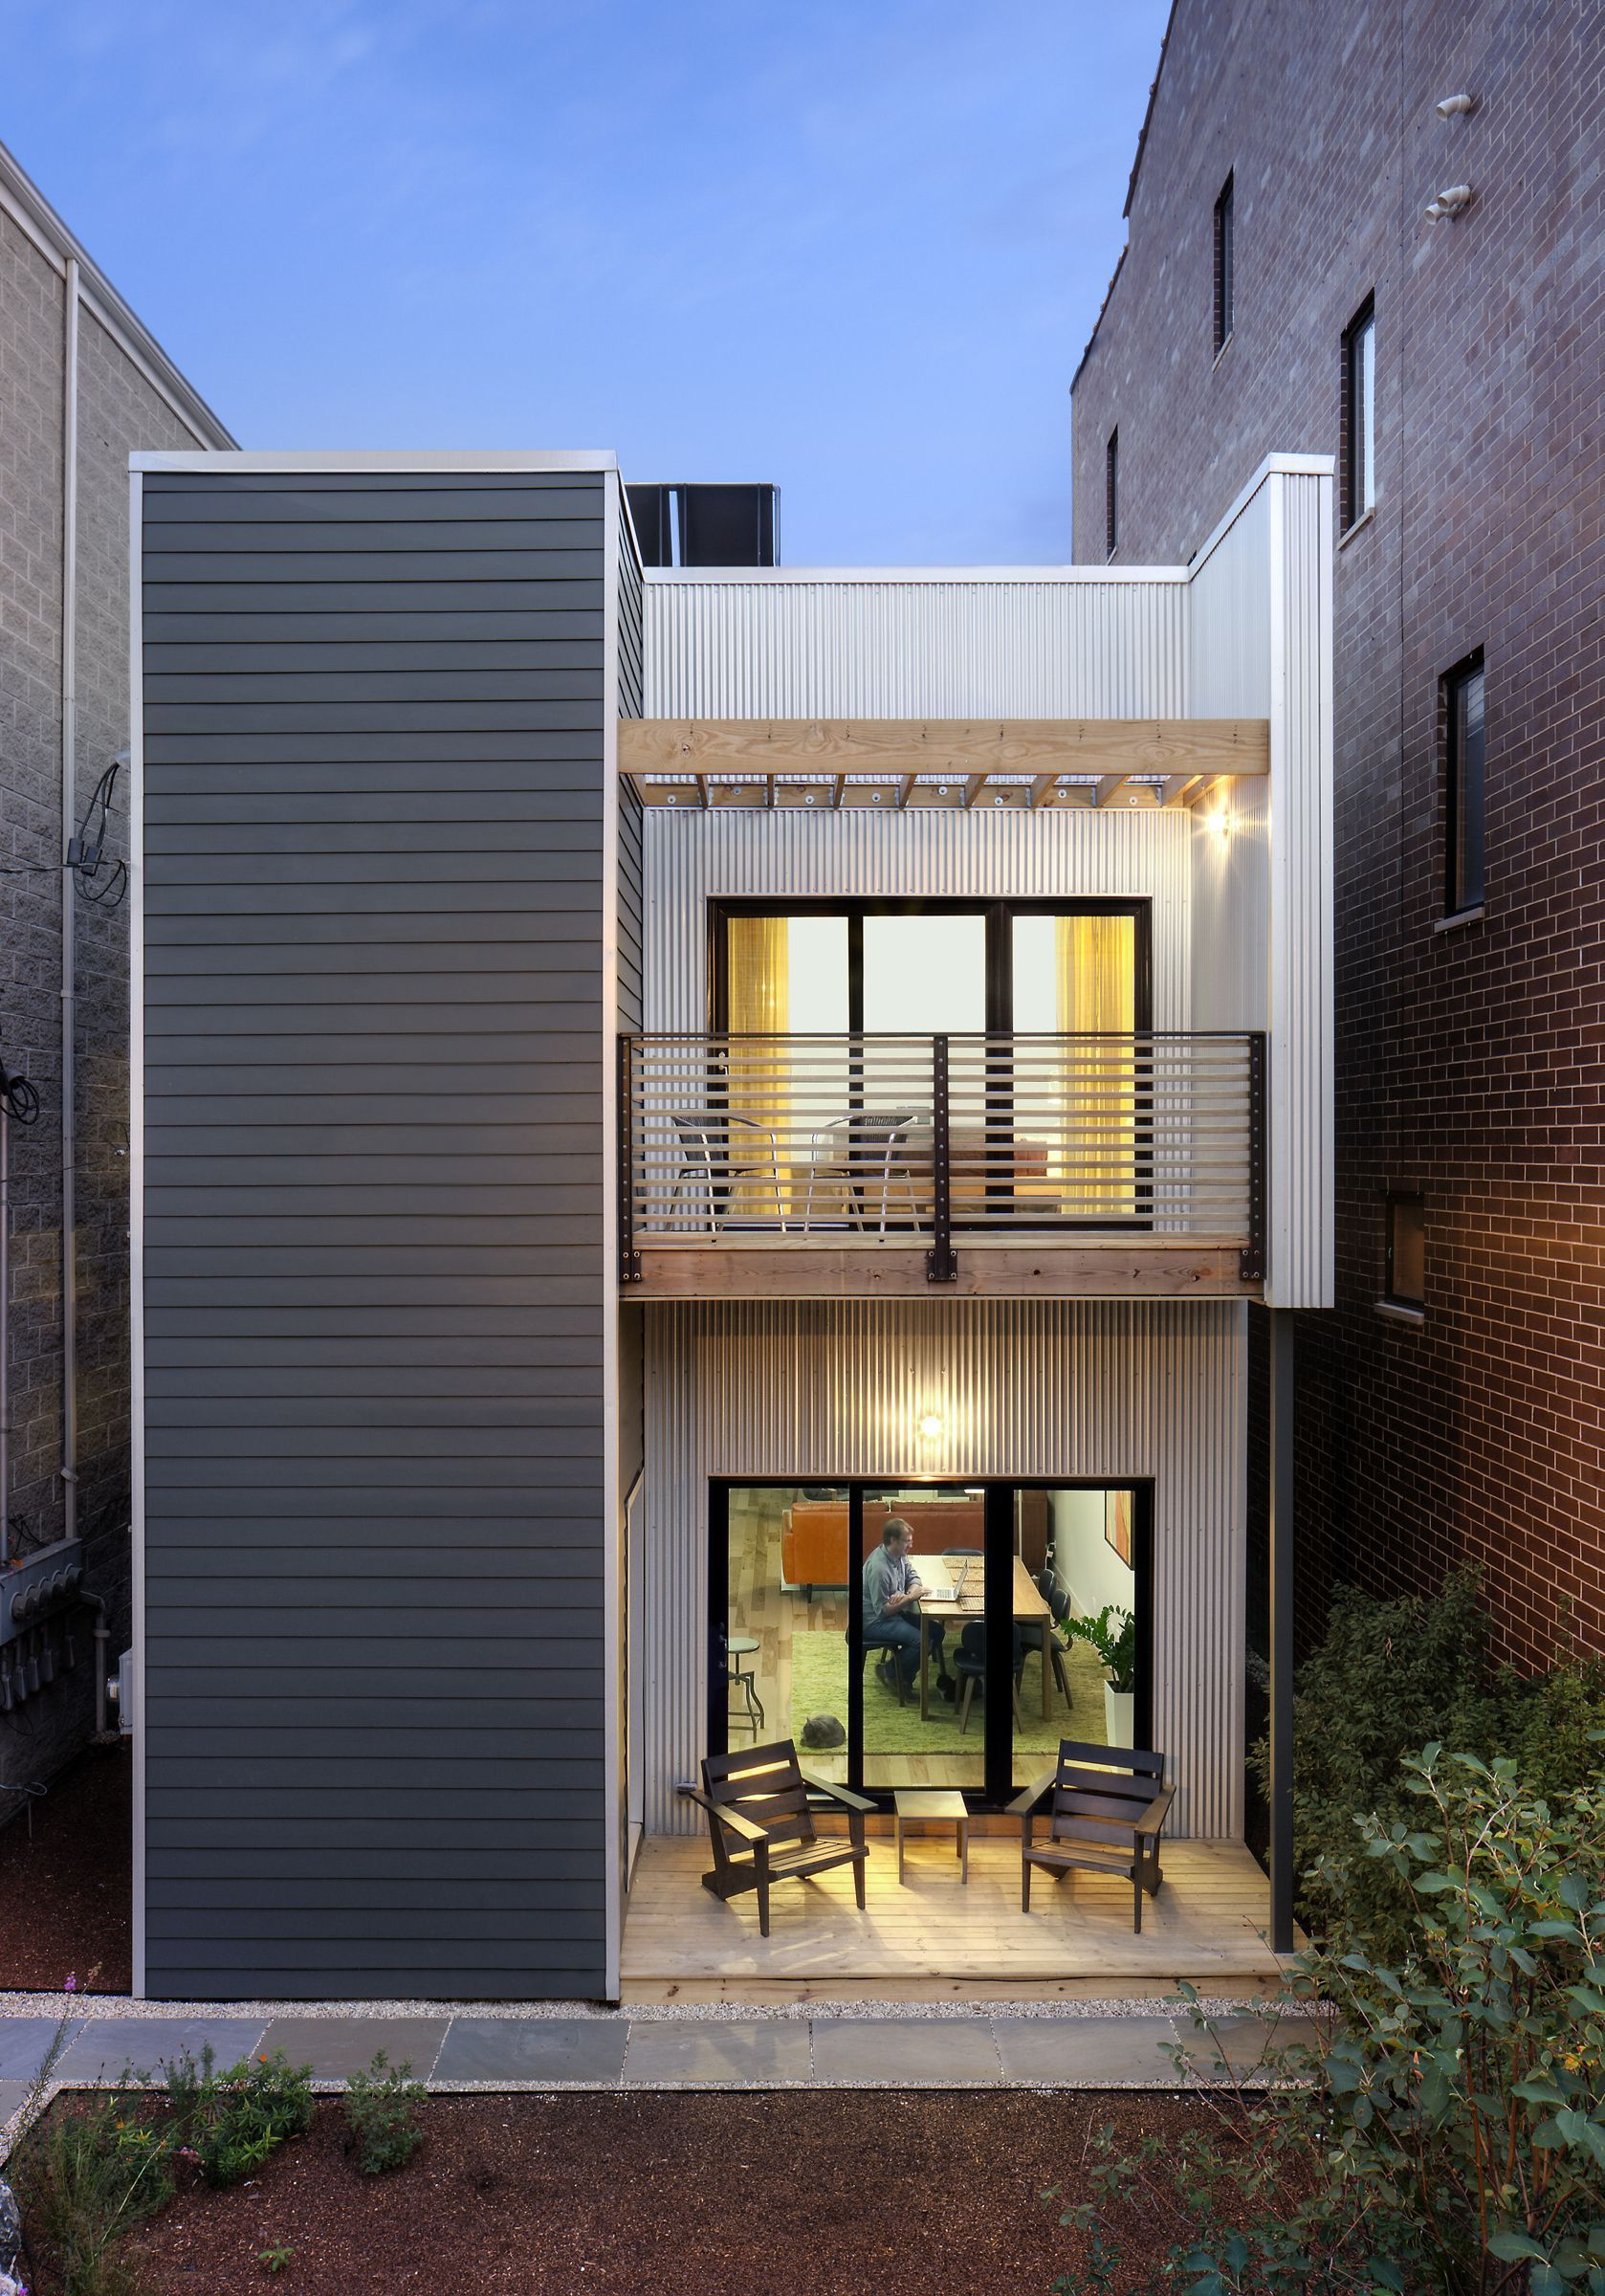 Mujis Vertical House Isnt The Only Nifty Prefab Home On